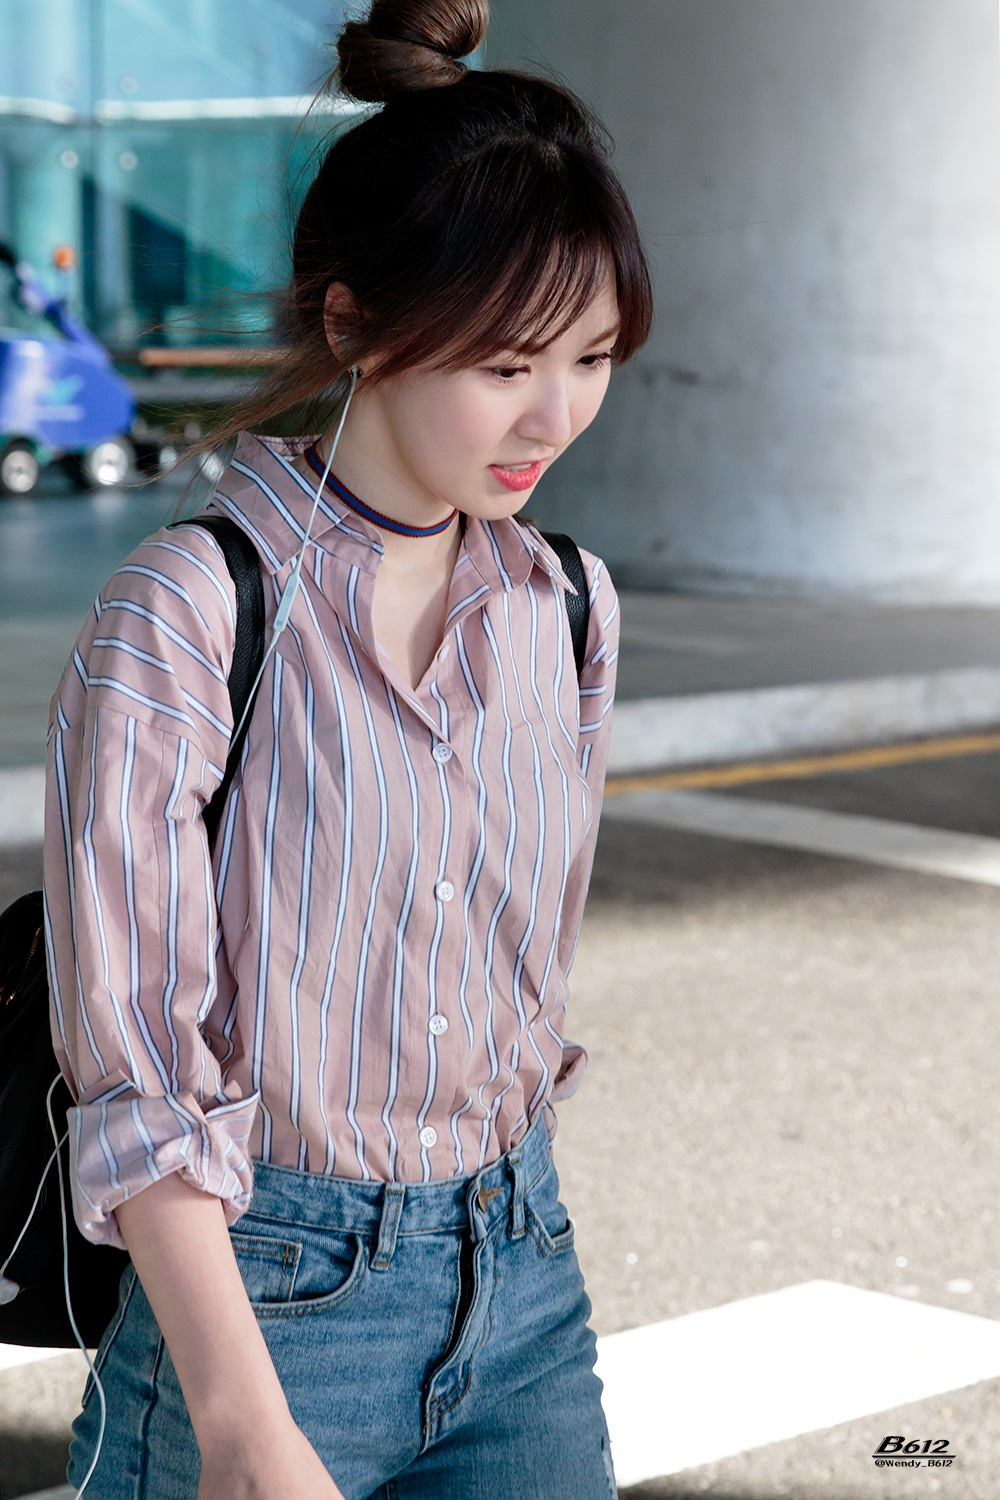 Wendy Channels Her Inner Tiffany With Latest Airport